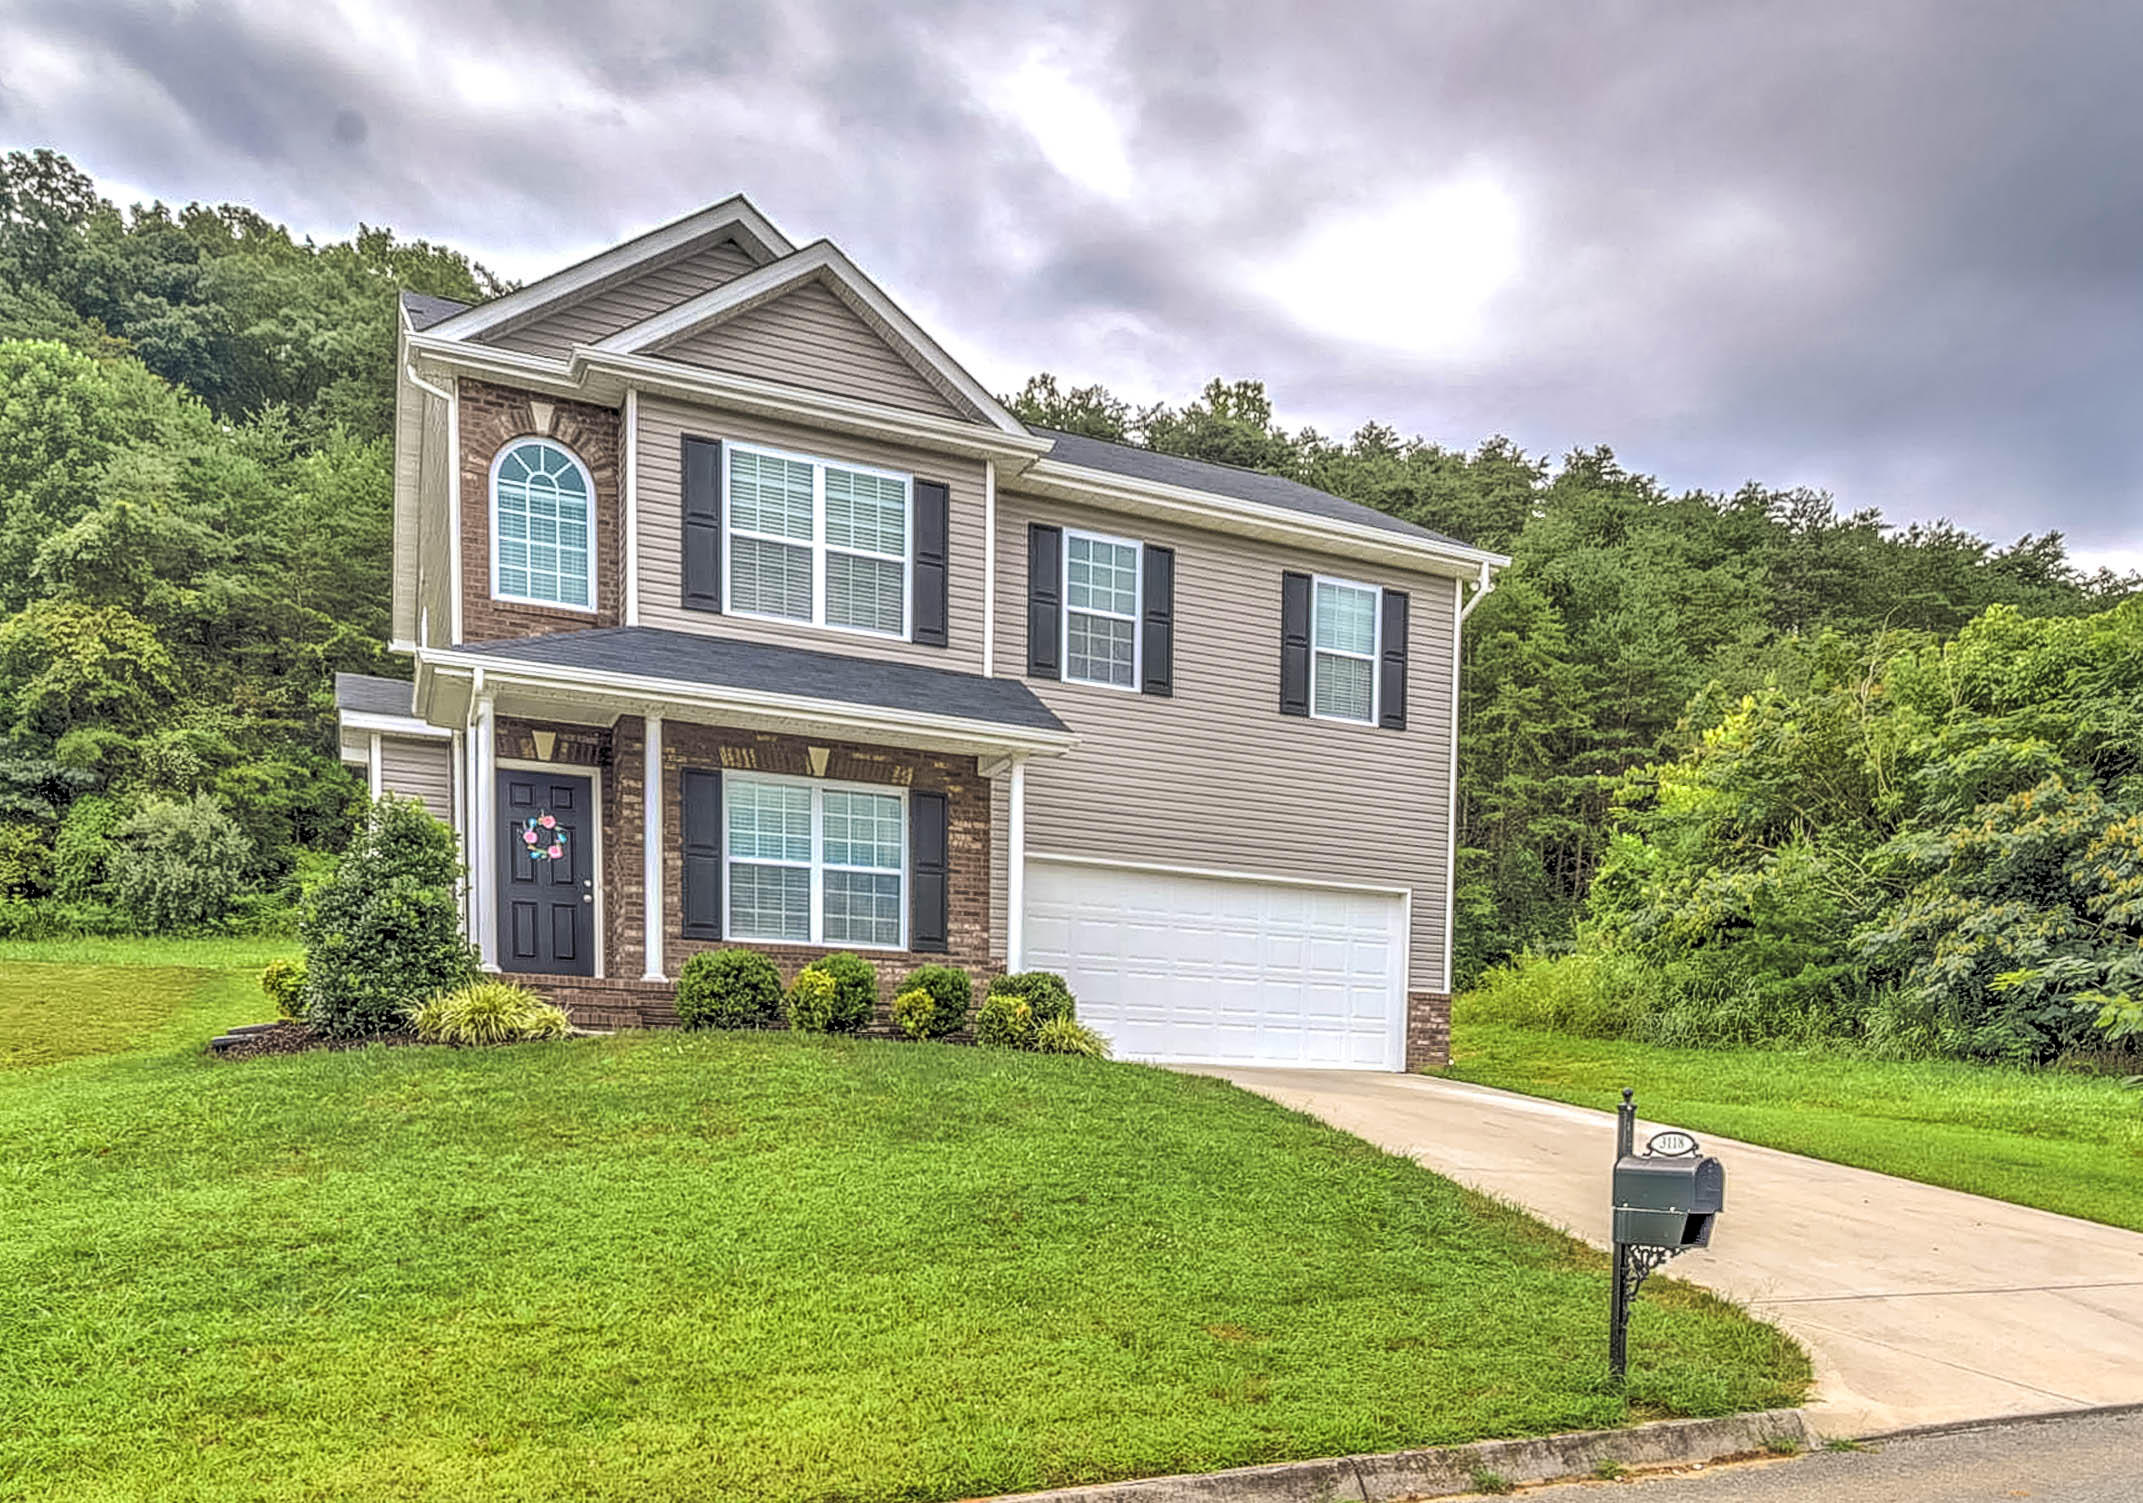 3118 Whelahan Farm Rd, Knoxville, Tennessee 37924, 3 Bedrooms Bedrooms, ,2 BathroomsBathrooms,Single Family,For Sale,Whelahan Farm,1090275